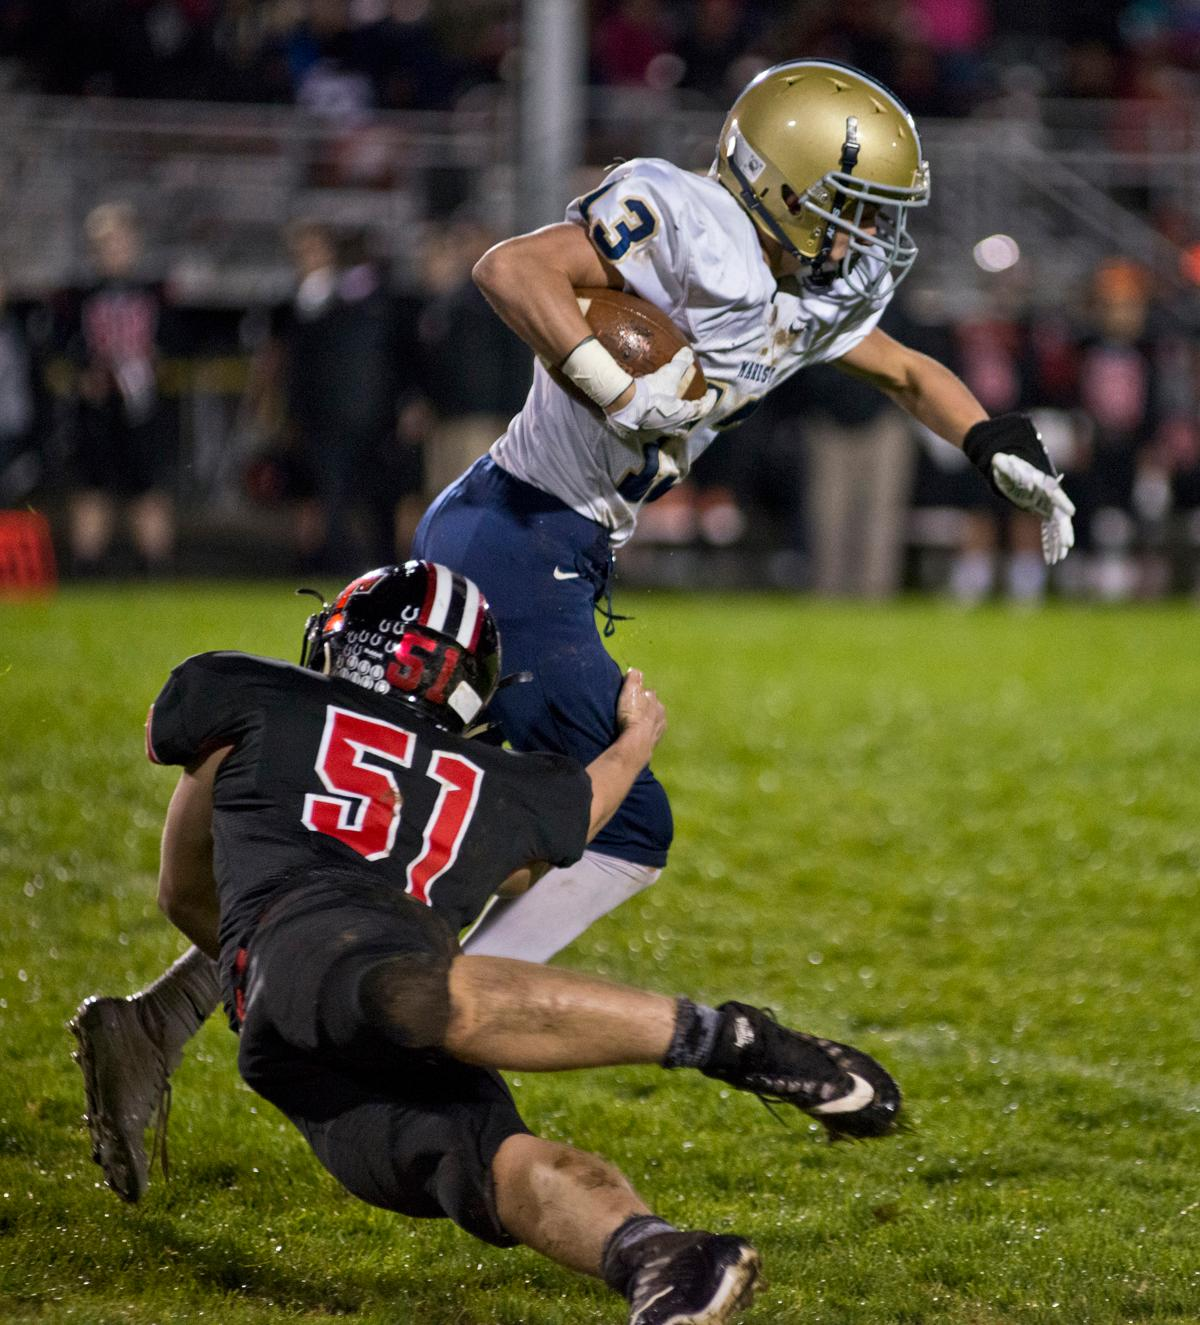 Marist Spartans wide receiver Hagan Stephenson (#13) is tackled by Thurston Colts linebacker Cayden Torkelson (#51). Thurston defeated Marist 50 to 14 to seal the second position in their conference. Photo by Dan Morrison, Oregon News Lab